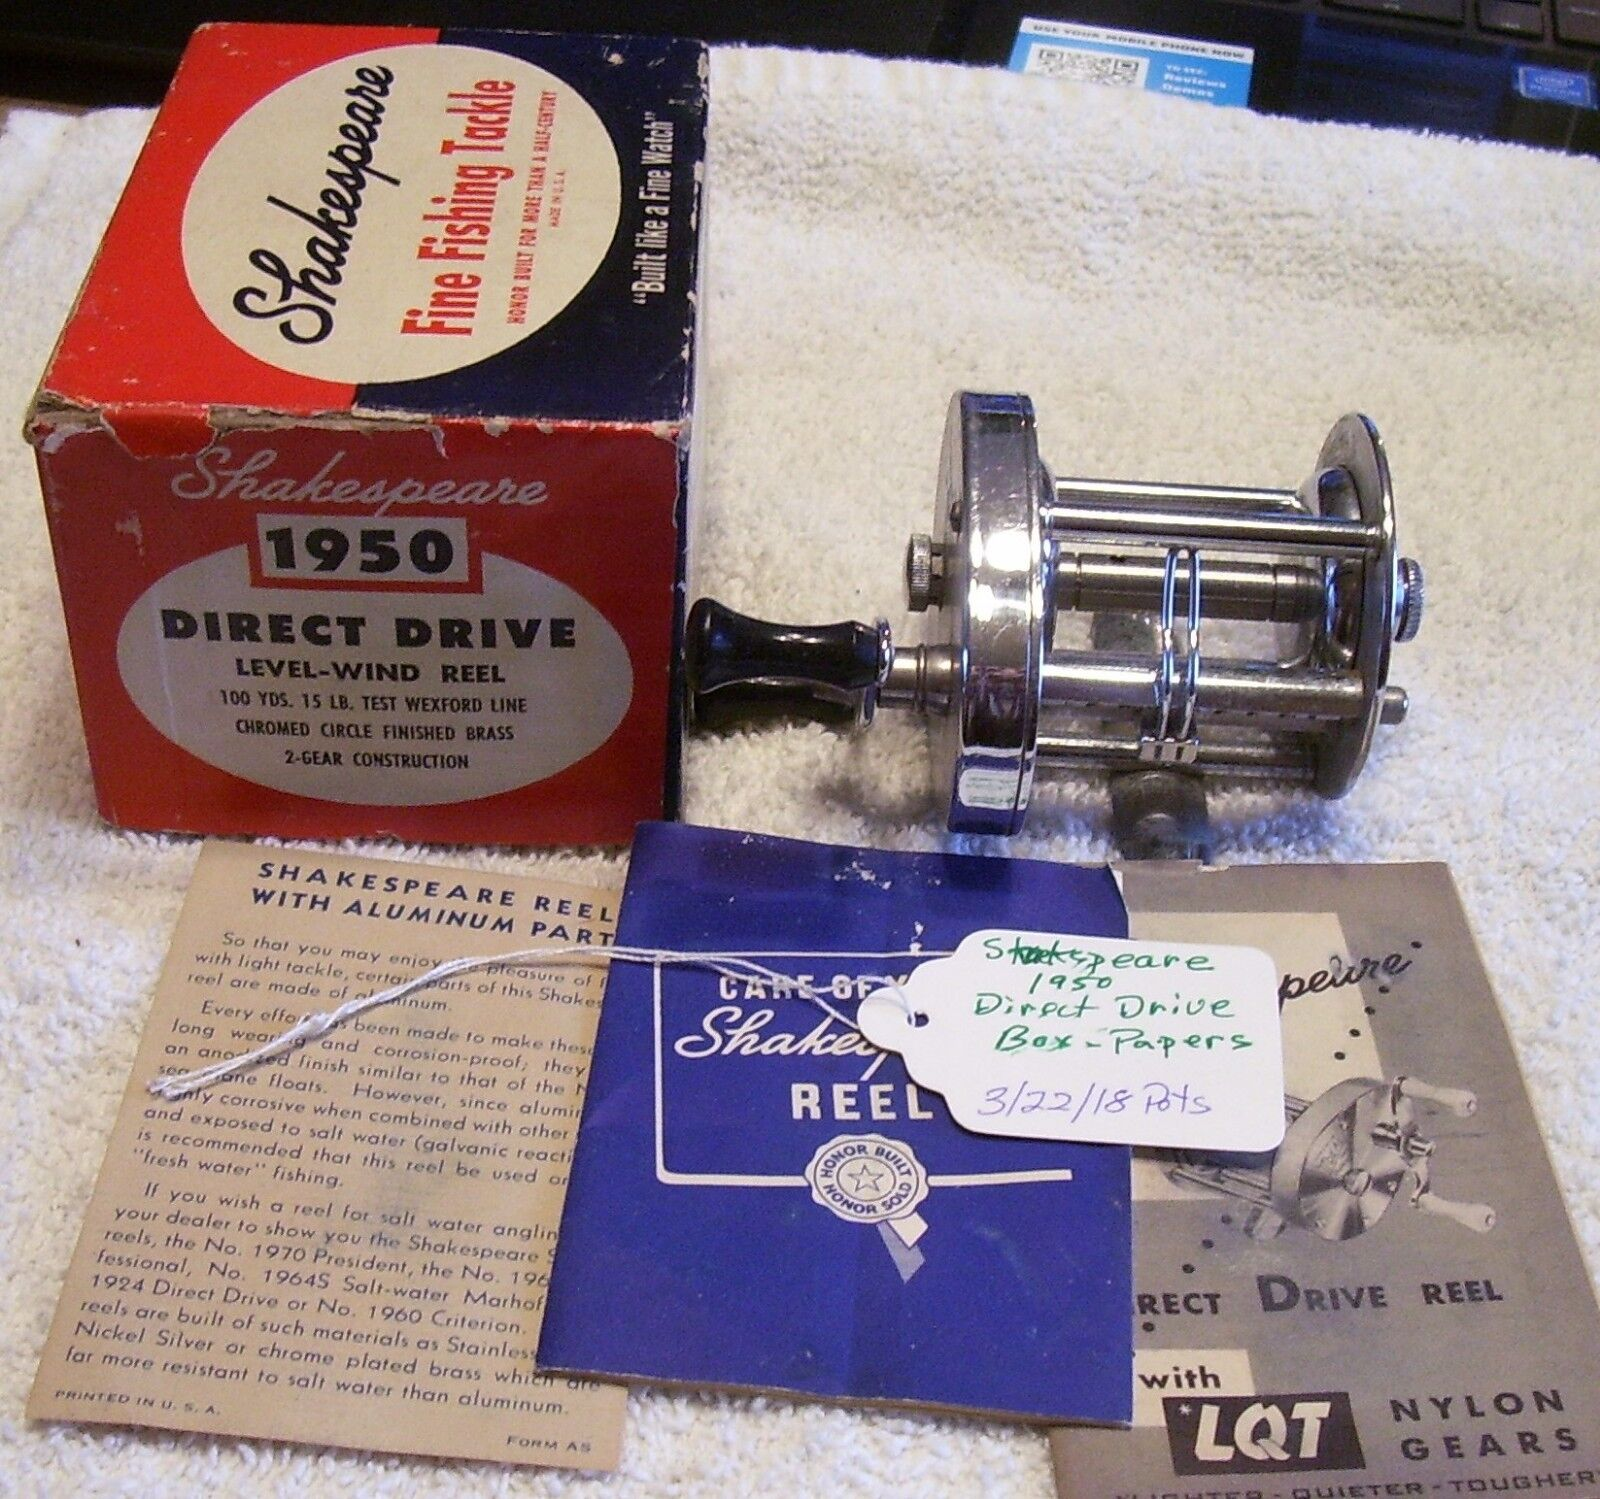 SHAKESPEARE DIRECT DRIVE 1950 REEL TAG 22 18POTS  BOX  PAPERS